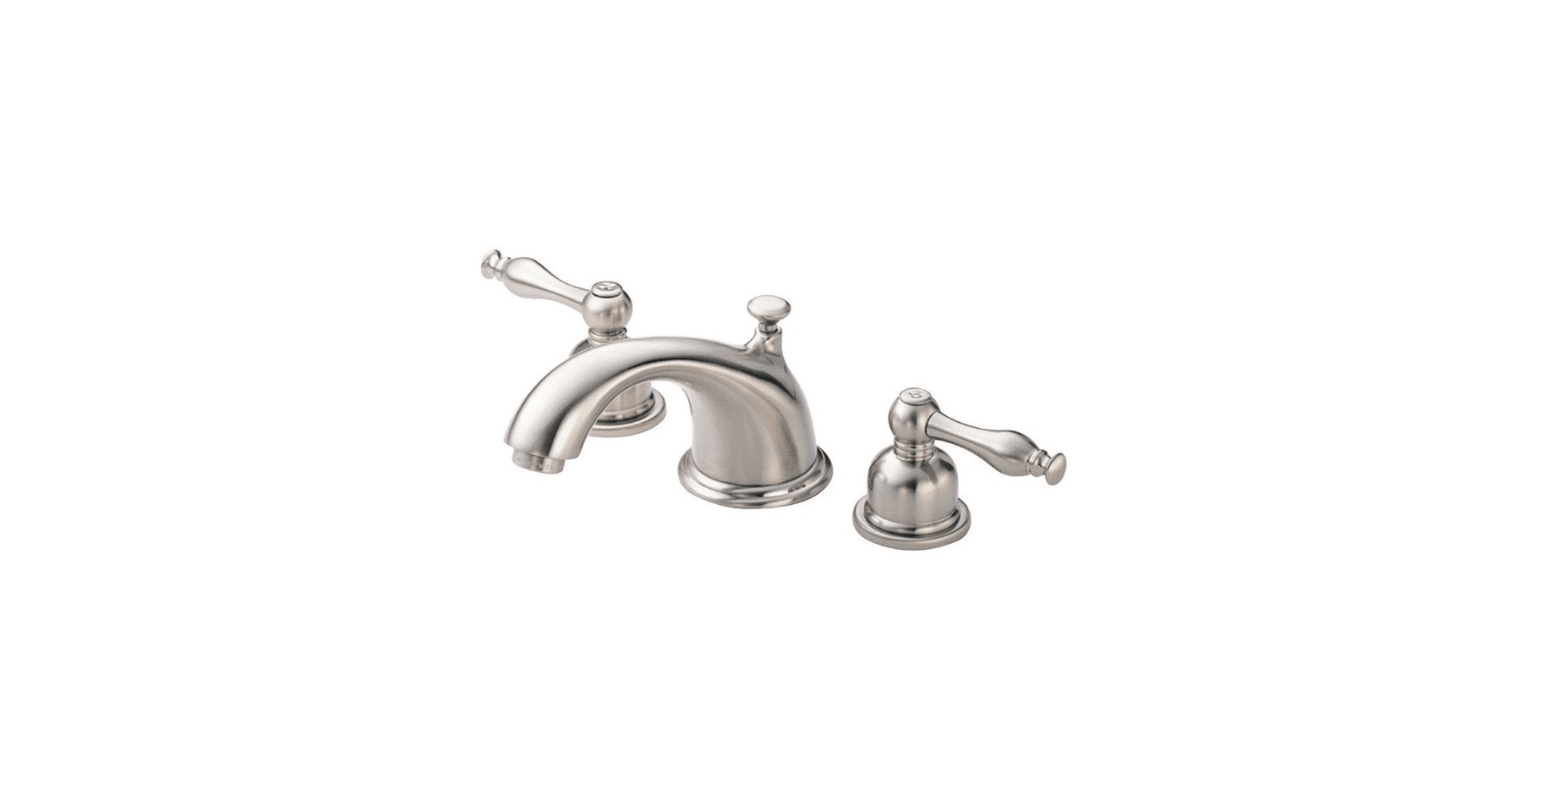 Danze D Bn Brushed Nickel Bathroom Faucet